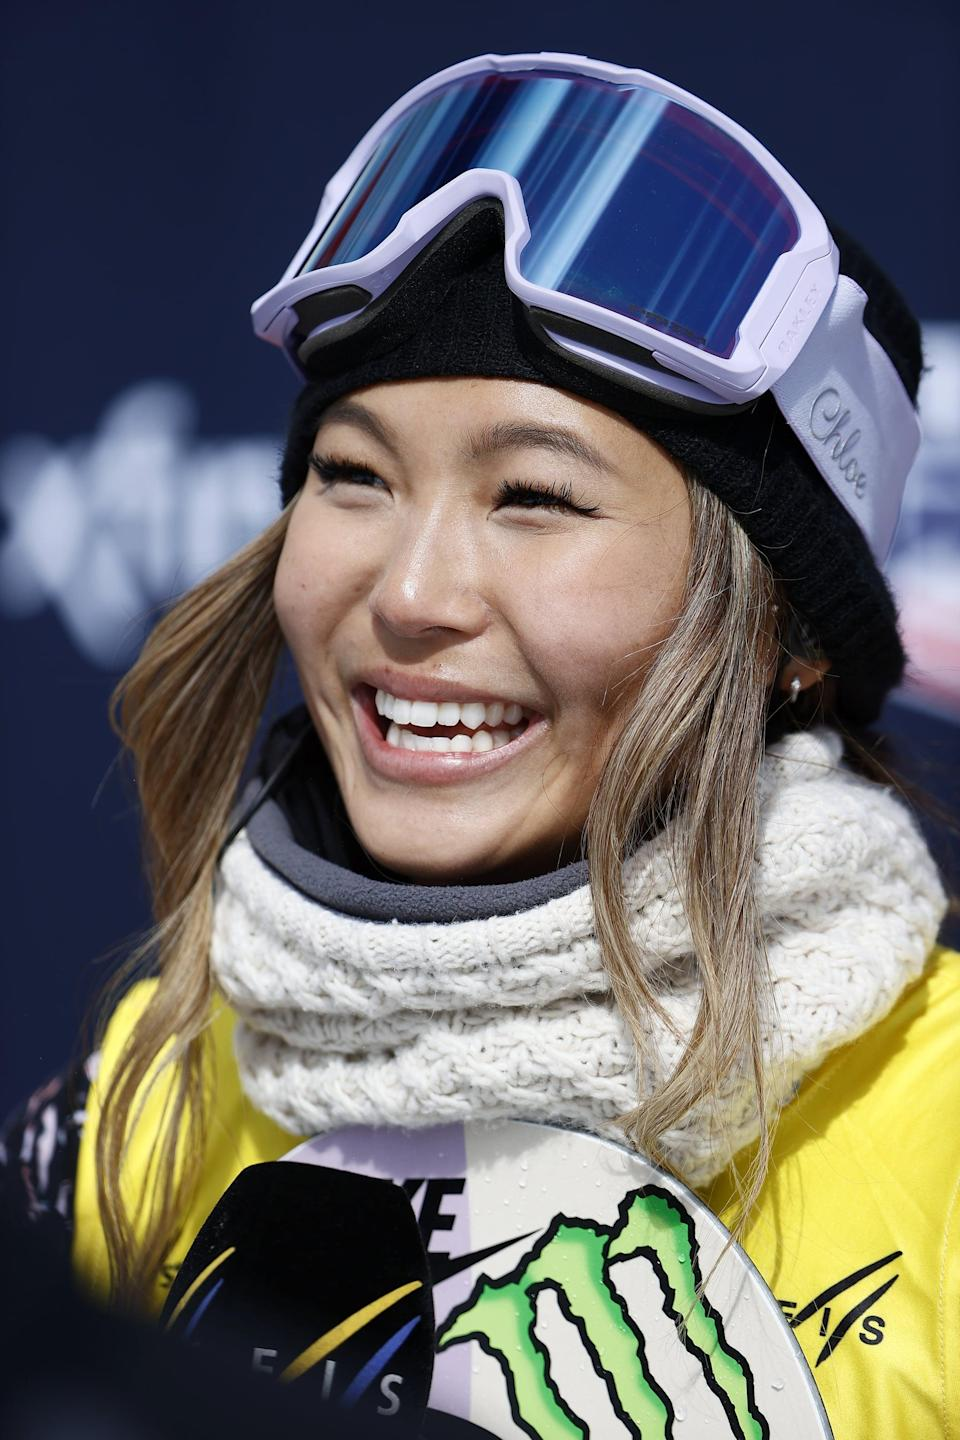 """<p>In 2018, Chloe Kim became <a href=""""https://www.olympicchannel.com/en/athletes/detail/chloe-kim/"""" class=""""link rapid-noclick-resp"""" rel=""""nofollow noopener"""" target=""""_blank"""" data-ylk=""""slk:the youngest woman to win an Olympic gold medal in snowboarding"""">the youngest woman to win an Olympic gold medal in snowboarding</a>, and she quickly used her platform to speak out against bullying, something the then 17-year-old had experienced herself. """"<a href=""""https://www.goodmorningamerica.com/culture/story/fresh-off-olympic-glory-chloe-kim-hopes-platform-54057914"""" class=""""link rapid-noclick-resp"""" rel=""""nofollow noopener"""" target=""""_blank"""" data-ylk=""""slk:So many kids have taken their lives"""">So many kids have taken their lives</a>, or are hurting themselves because of bullying. And they don't see the joys in life,"""" Kim told <strong>Good Morning America</strong>. Three years later, Kim is <a href=""""https://www.popsugar.com/fitness/athletes-launch-togethxr-media-company-womens-sports-48191162"""" class=""""link rapid-noclick-resp"""" rel=""""nofollow noopener"""" target=""""_blank"""" data-ylk=""""slk:a founding partner of Togxther"""">a founding partner of Togxther</a>, a new platform dedicated to women's sports, which are notoriously underrepresented in media. It's yet another way to ensure that kids can see a future for themselves: one where their talents are celebrated.</p>"""